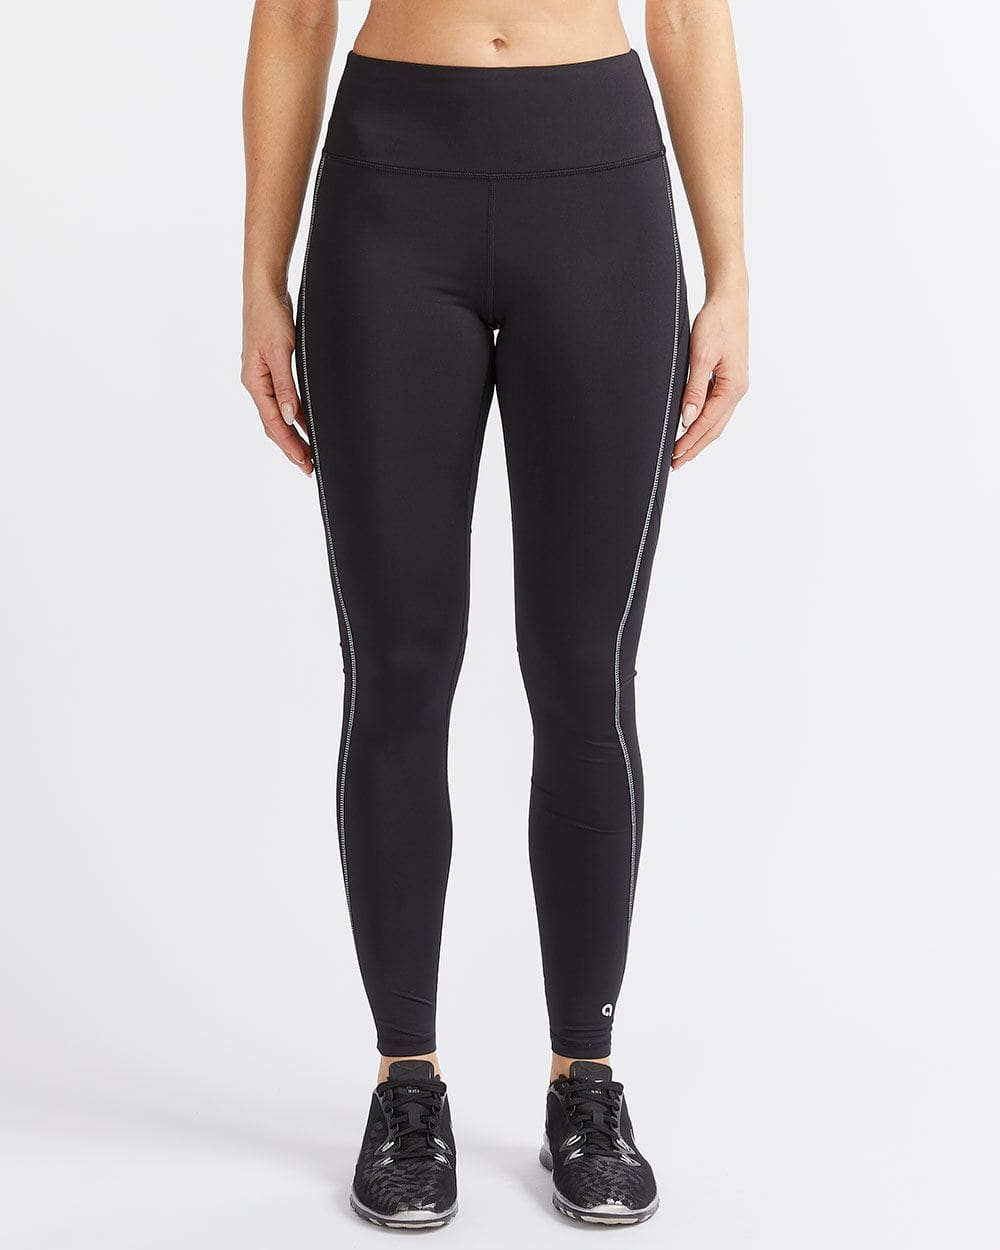 Hyba Reflective Running Legging